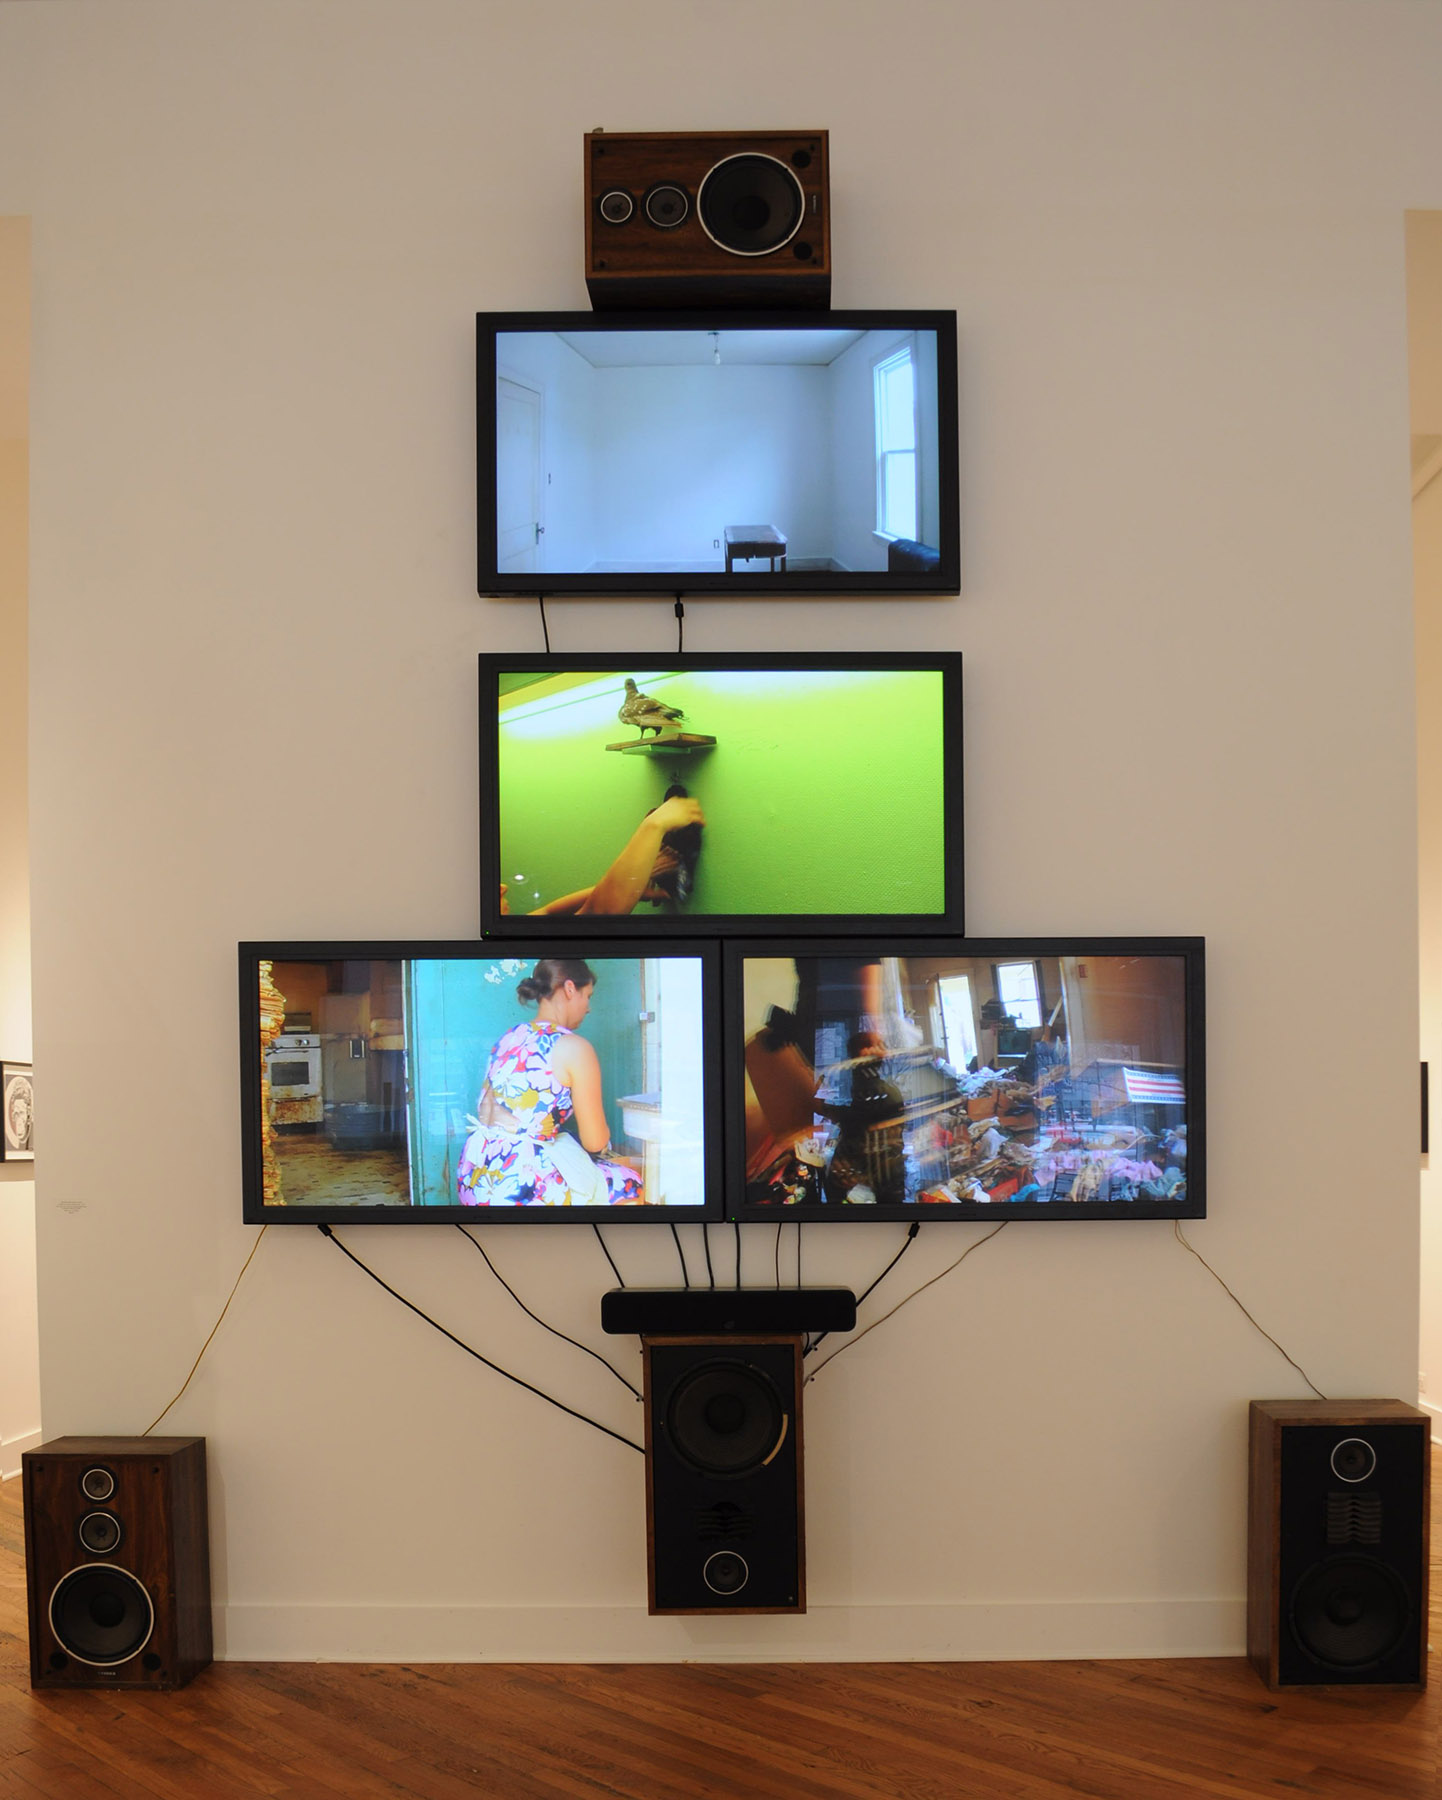 Ushers of the Accumulated 2017 , HD video with sound, plasma monitors, speakers, wires, cables, media players. 154 x 124 x 12 inches Unique